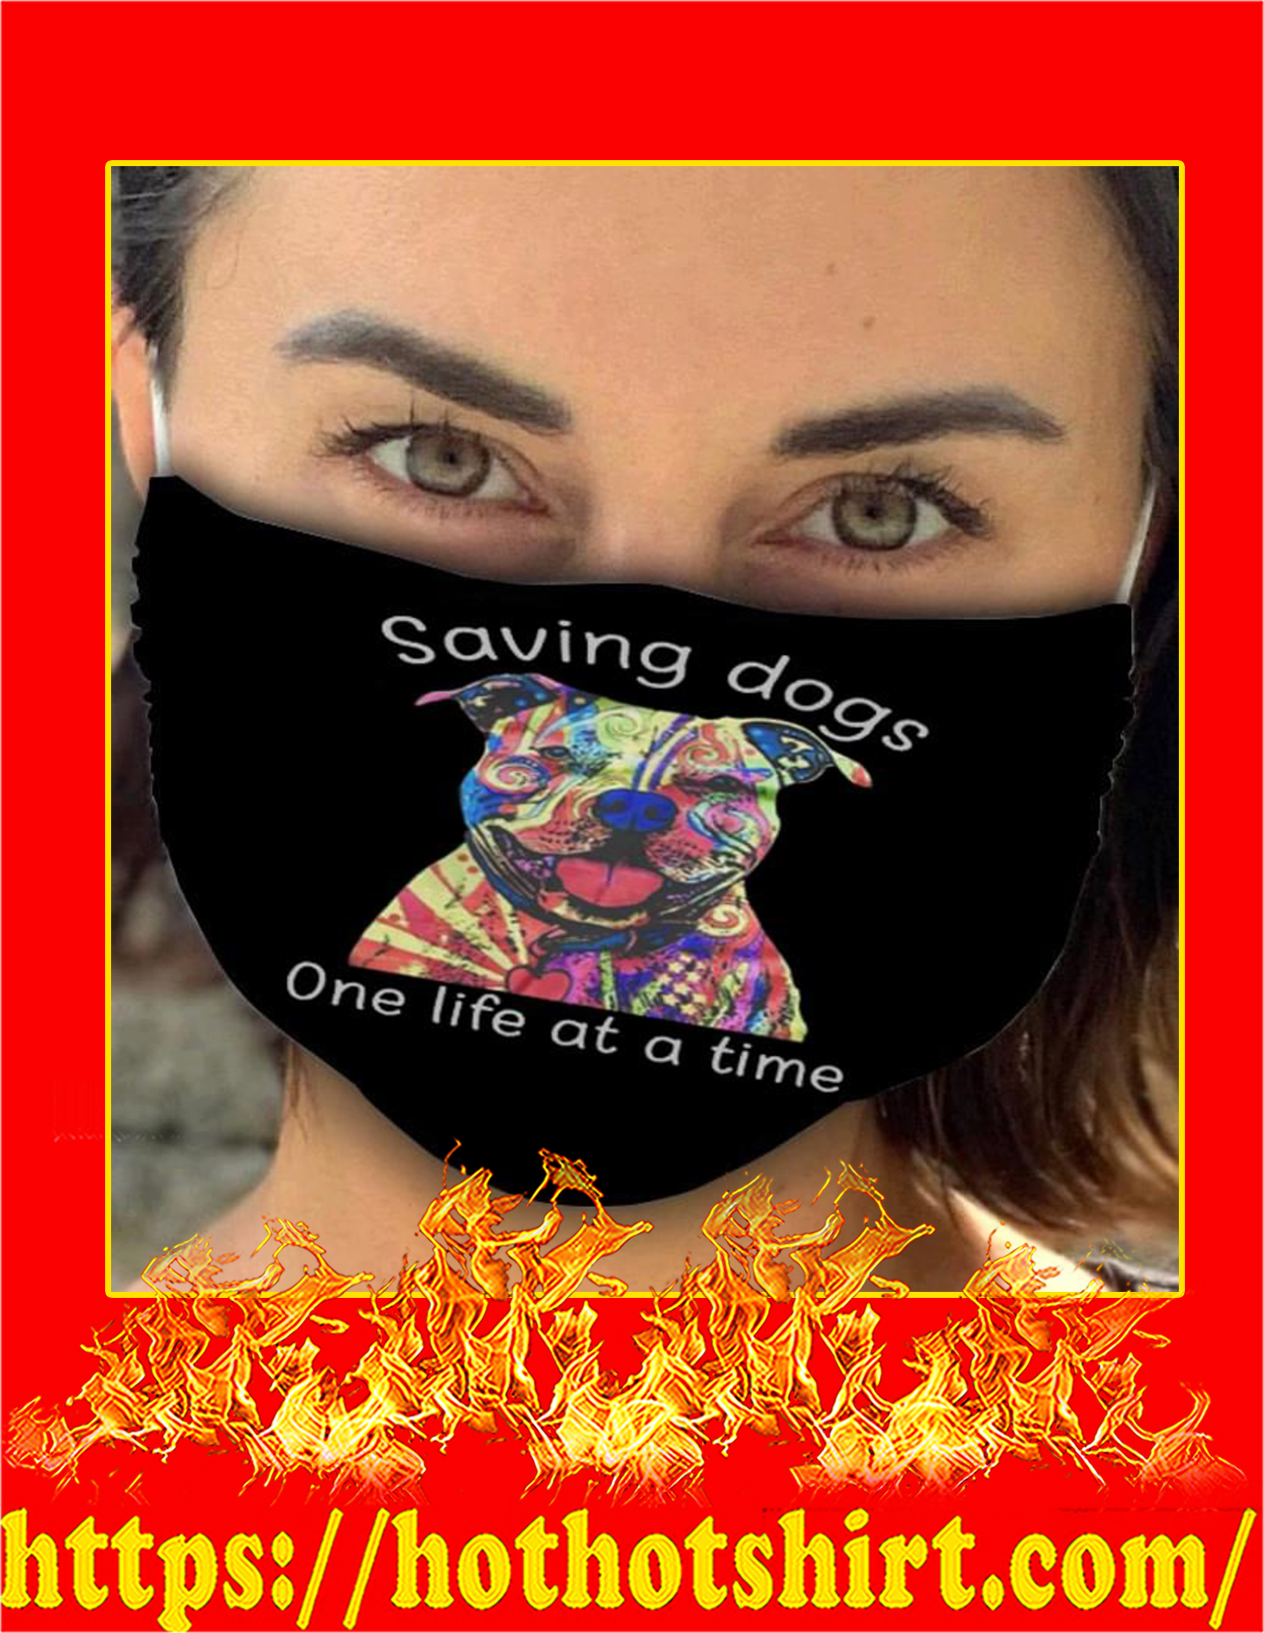 Pitbull tattoos saving dogs one life at a time face mask - detail